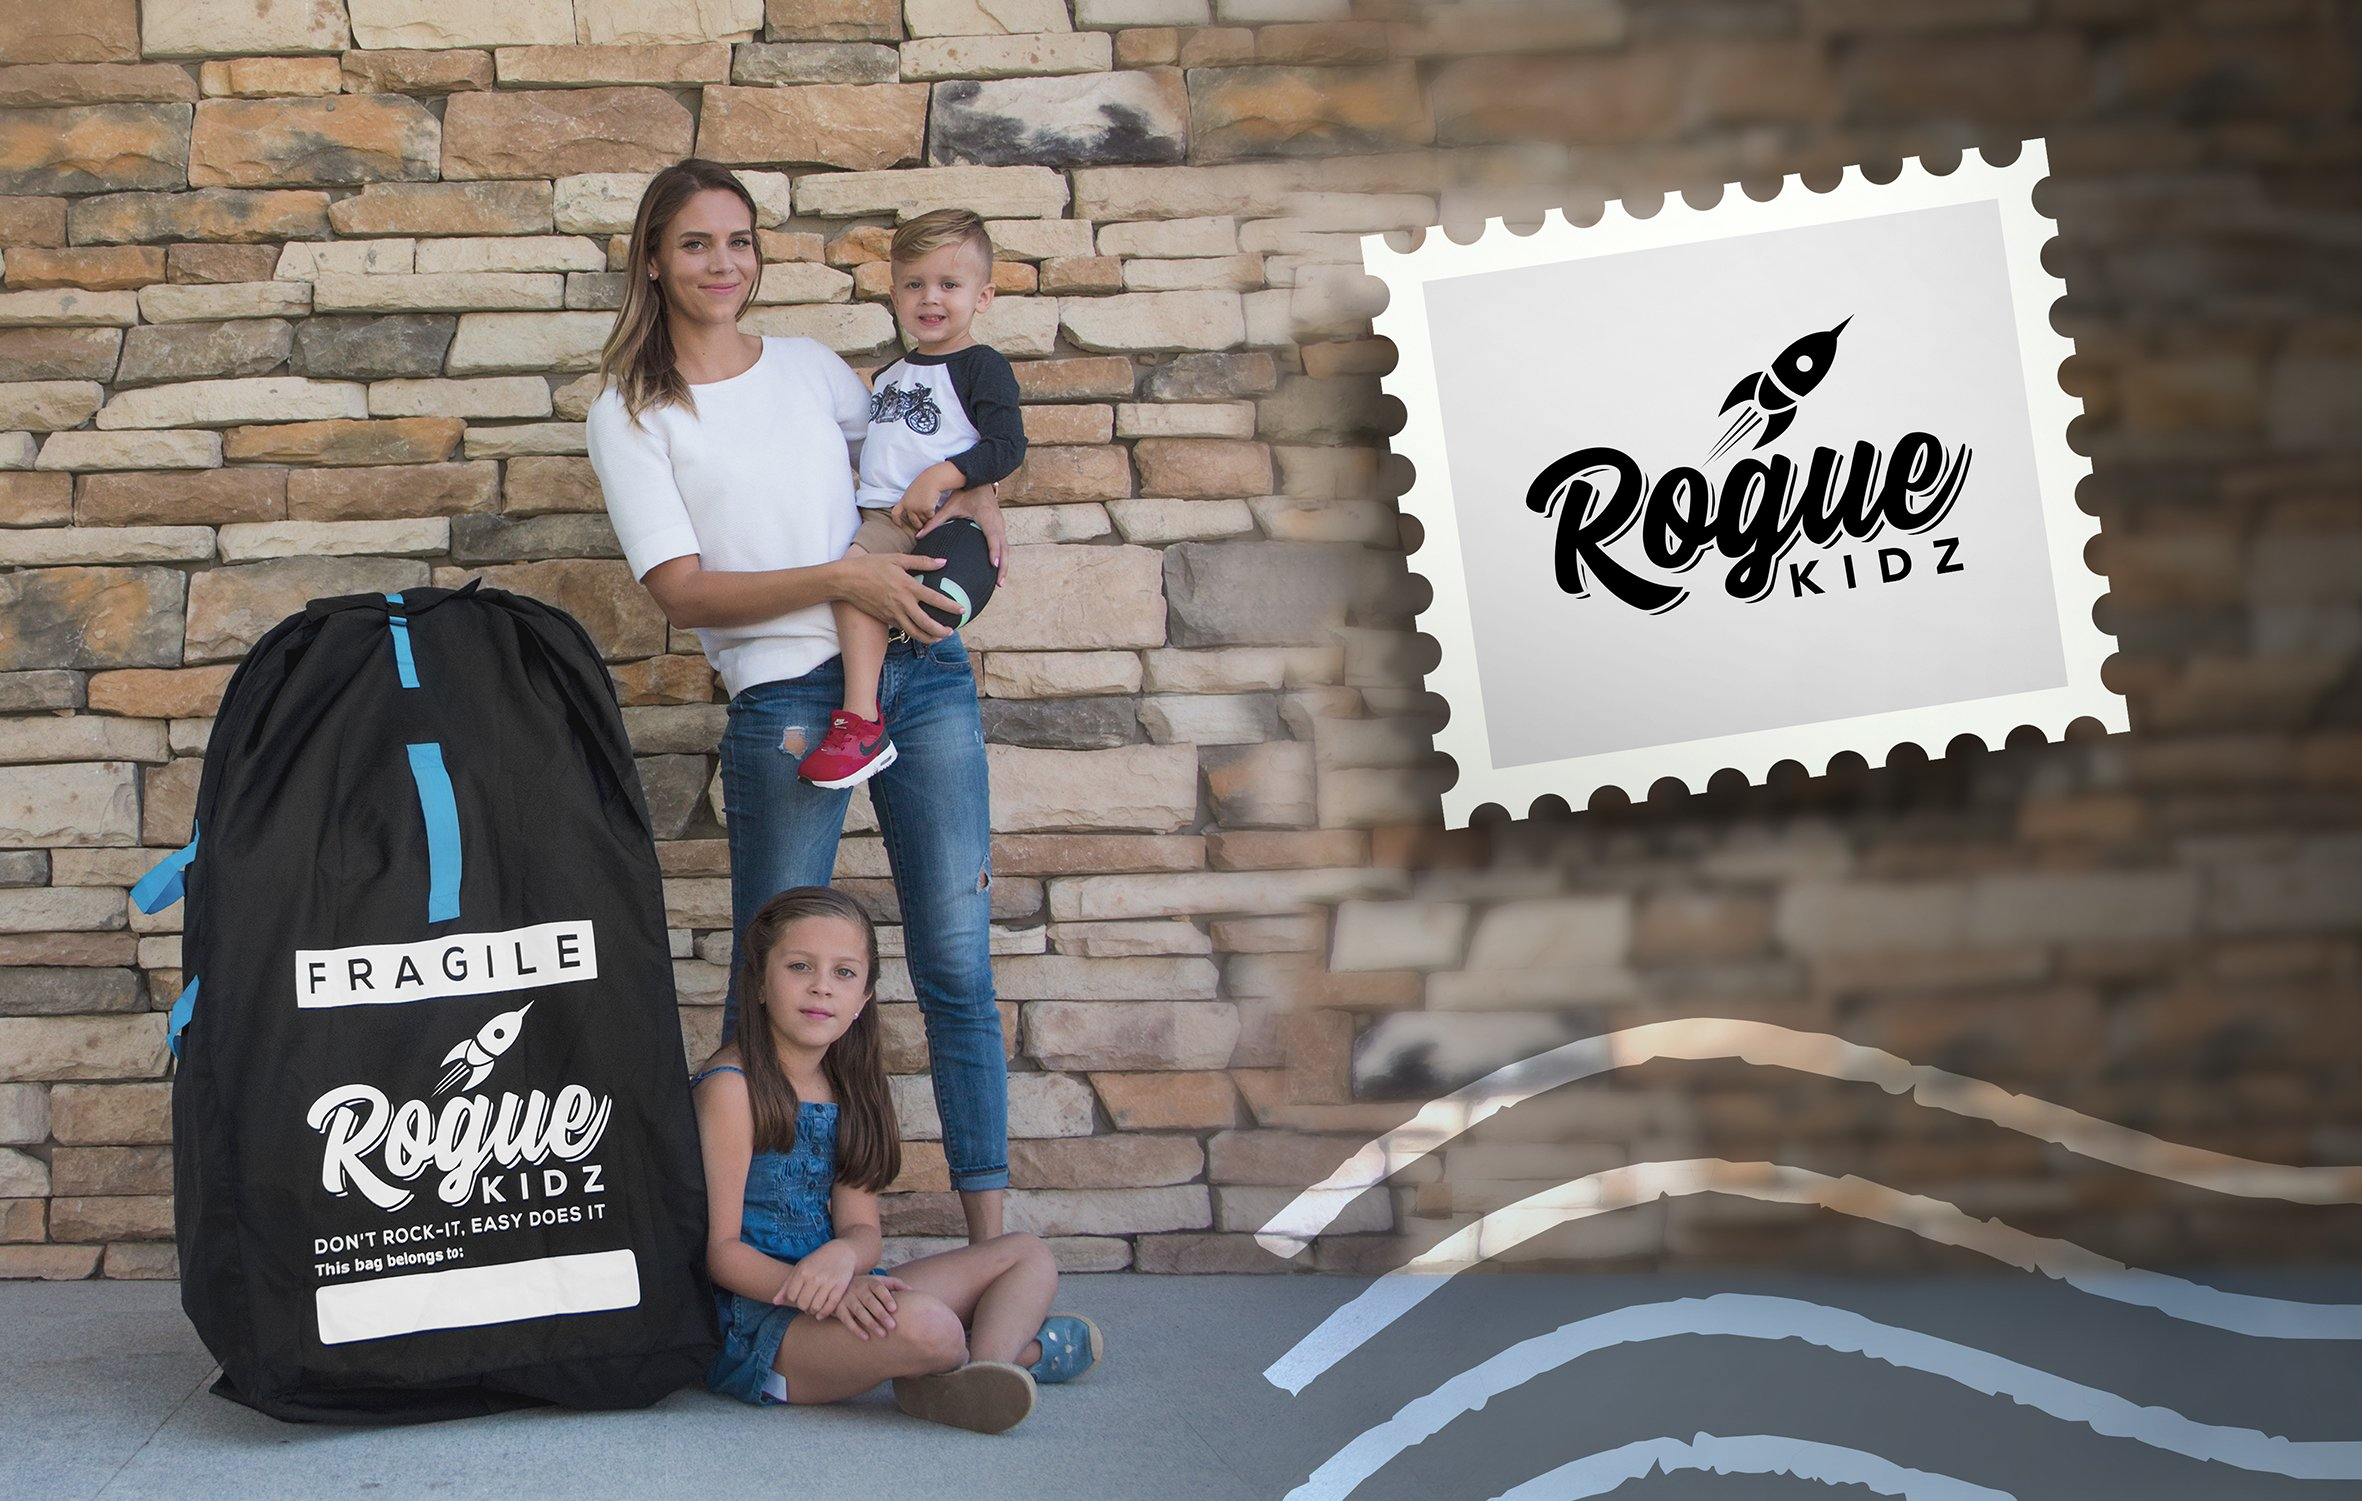 Rogue Kidz Single and Double Stroller Travel Bag For Airplane Gate Check - Durable Universal Large XL Cover With Padded Backpack Straps- Waterproof Heavy Duty Nylon Traveling Protector With Carry Case by Rogue Kidz (Image #8)